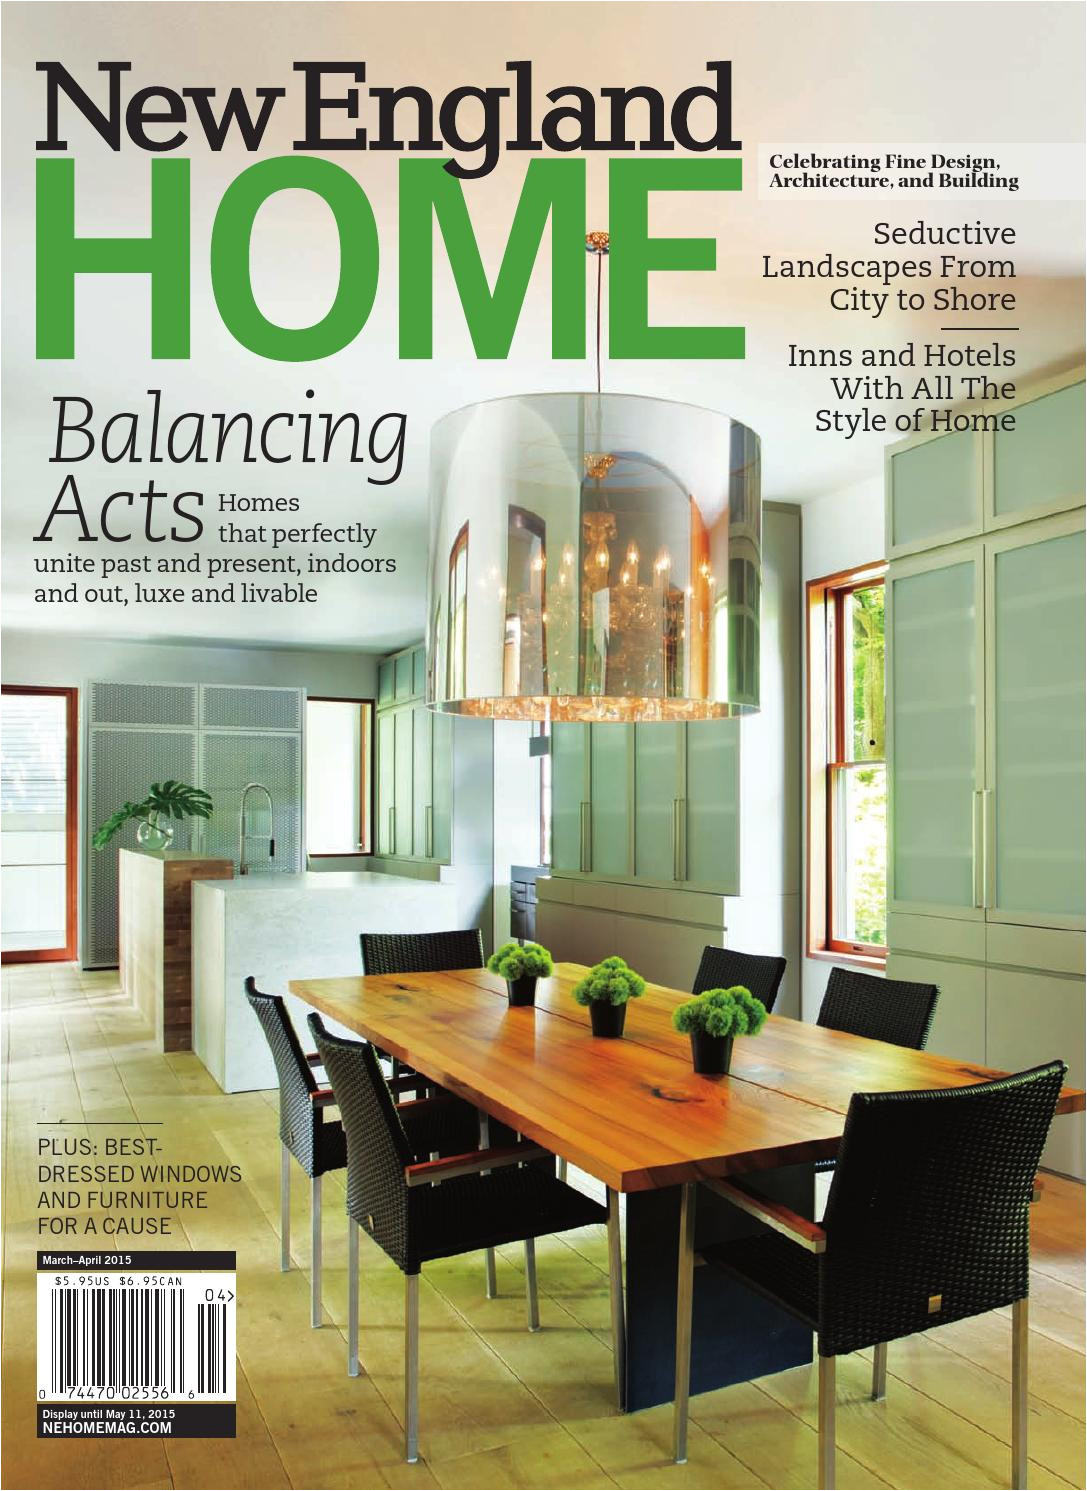 new england home march april 2015 by new england home magazine llc issuu